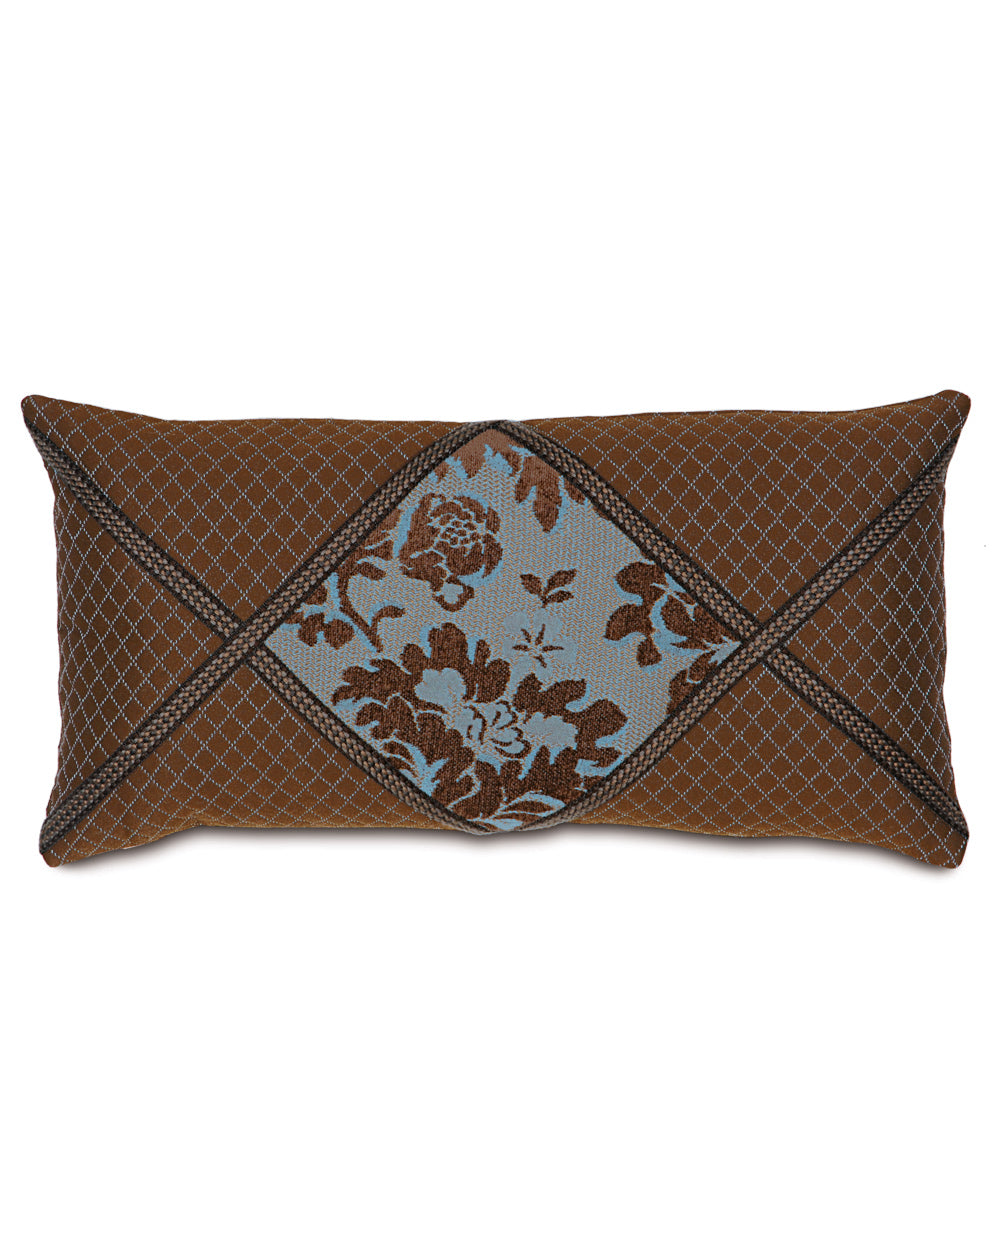 "12""x20"" Brockton Blue Brown Diamond Collage Luxury Pillow Cover"